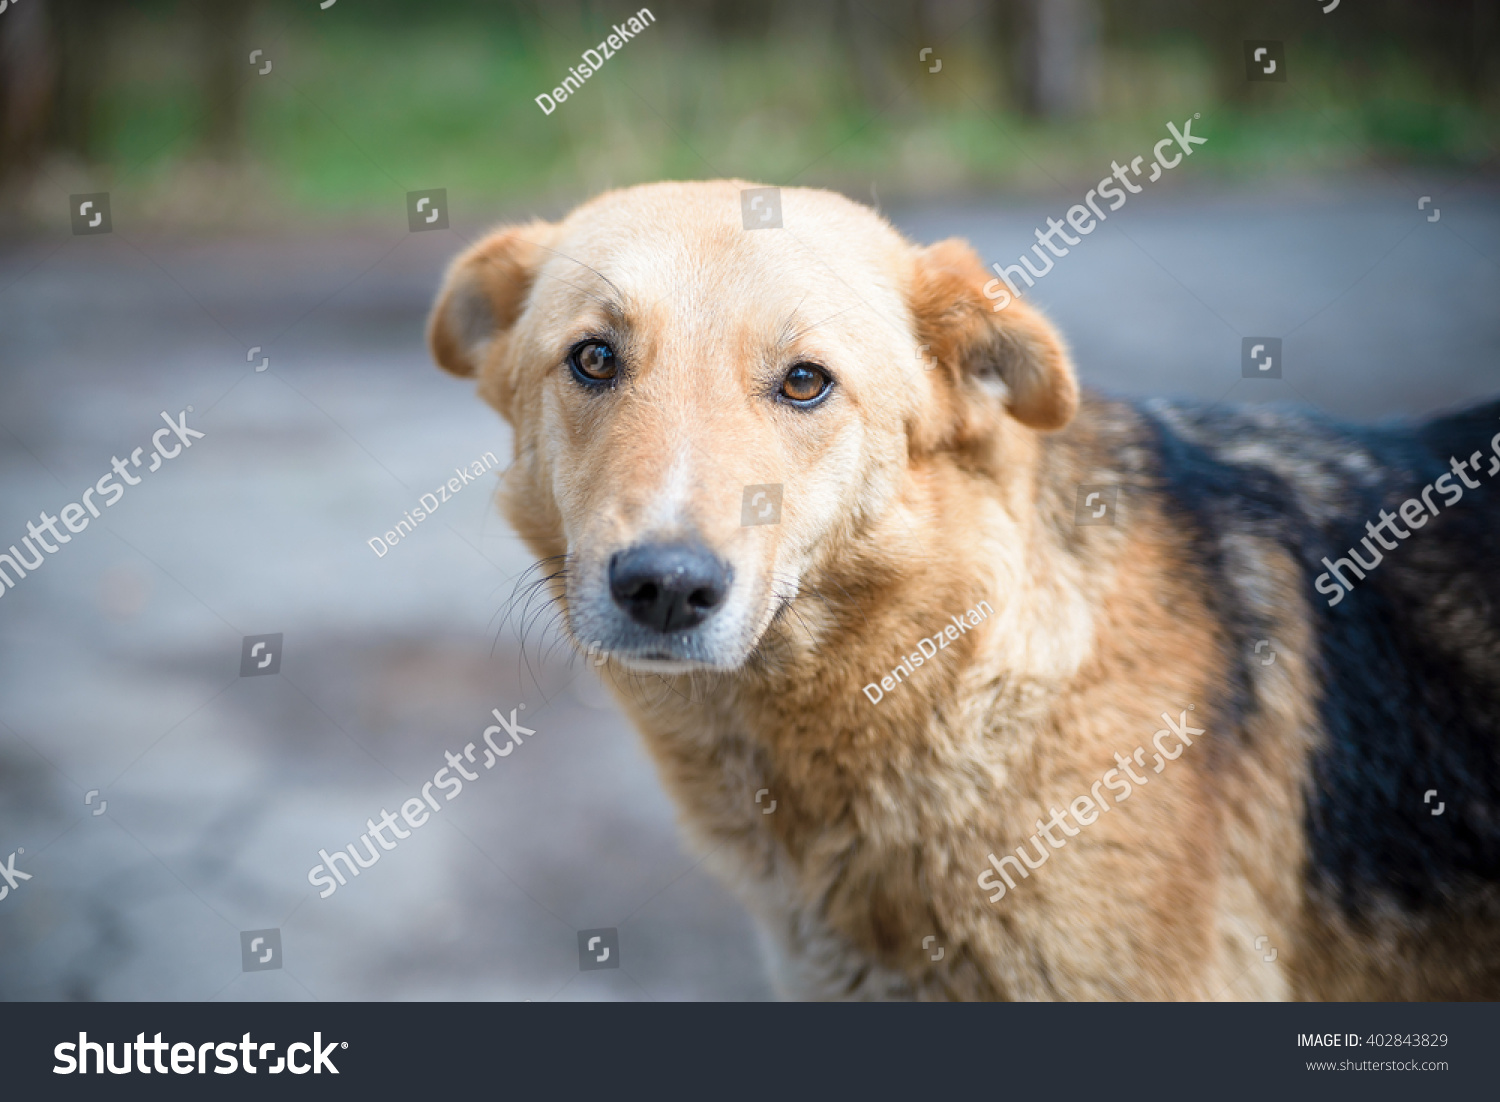 Puppy dog yellow golden background happy stock photo 402843829 puppy dog yellow golden background happy adorable cute sciox Image collections